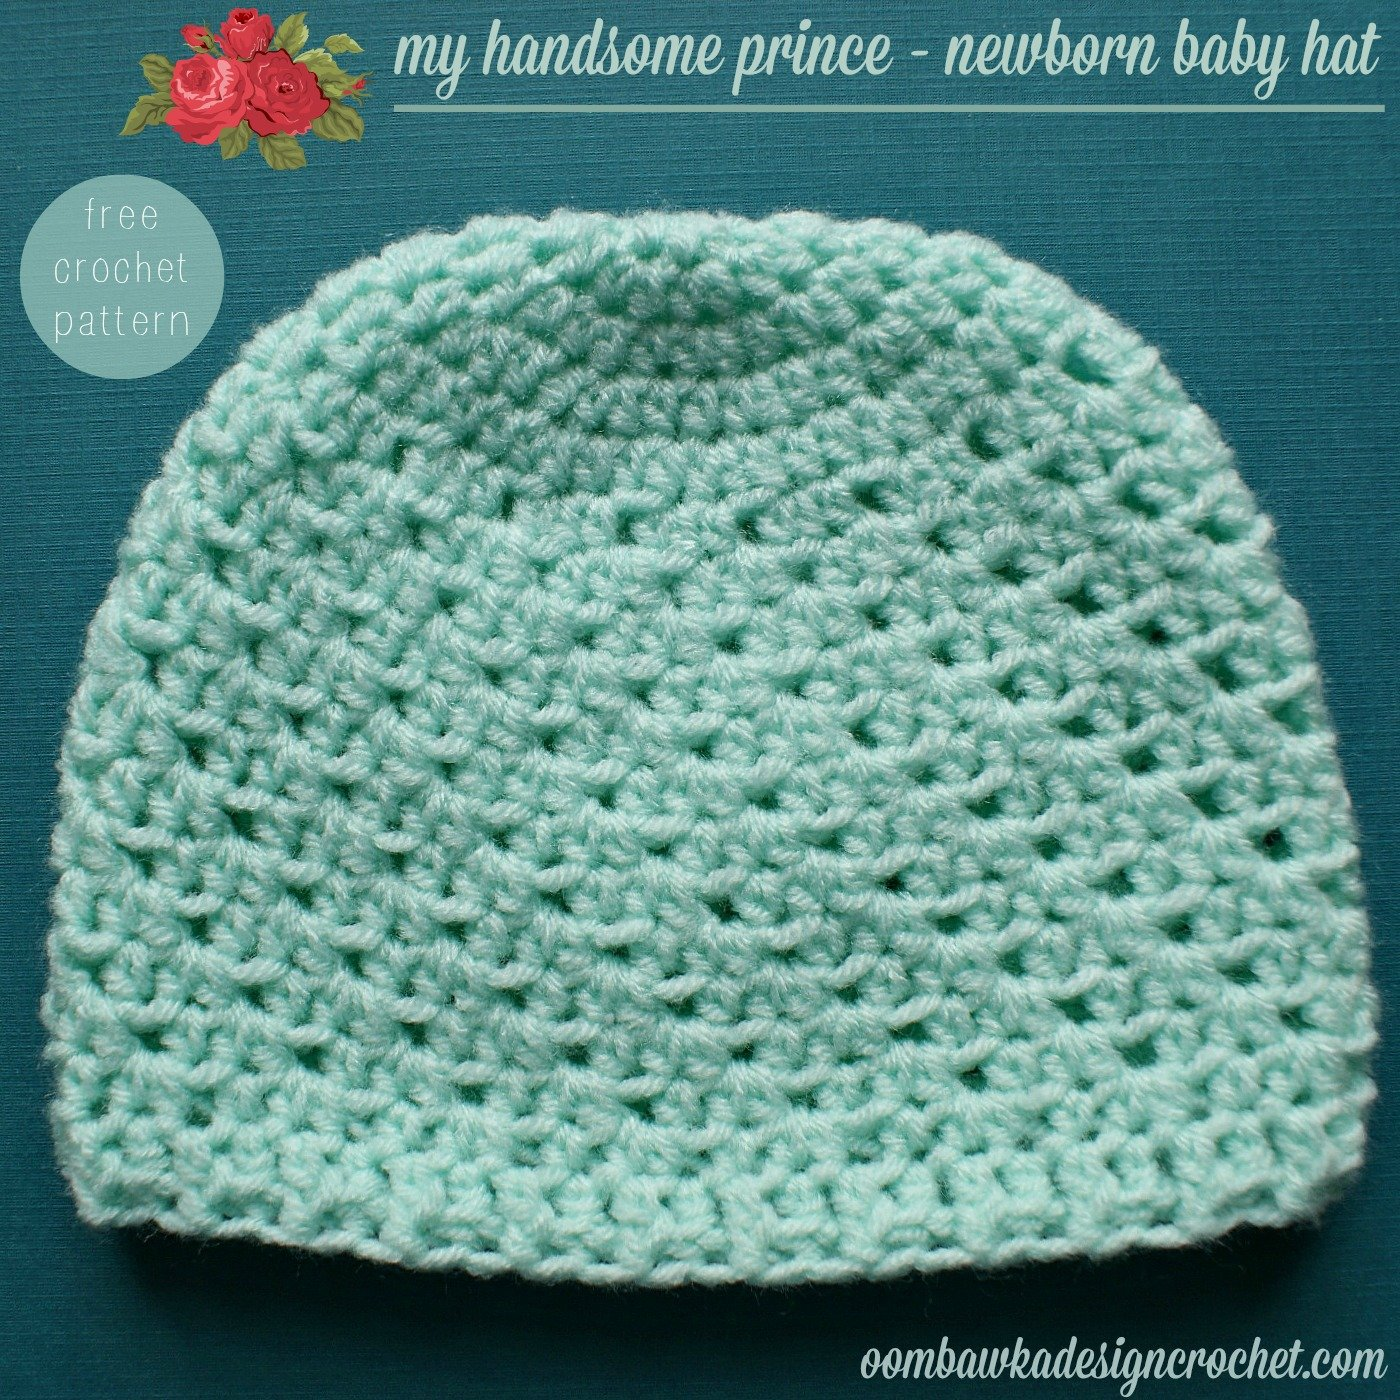 Crochet Patterns Newborn Hats : My Handsome Prince Newborn Baby Hat ? Oombawka Design Crochet